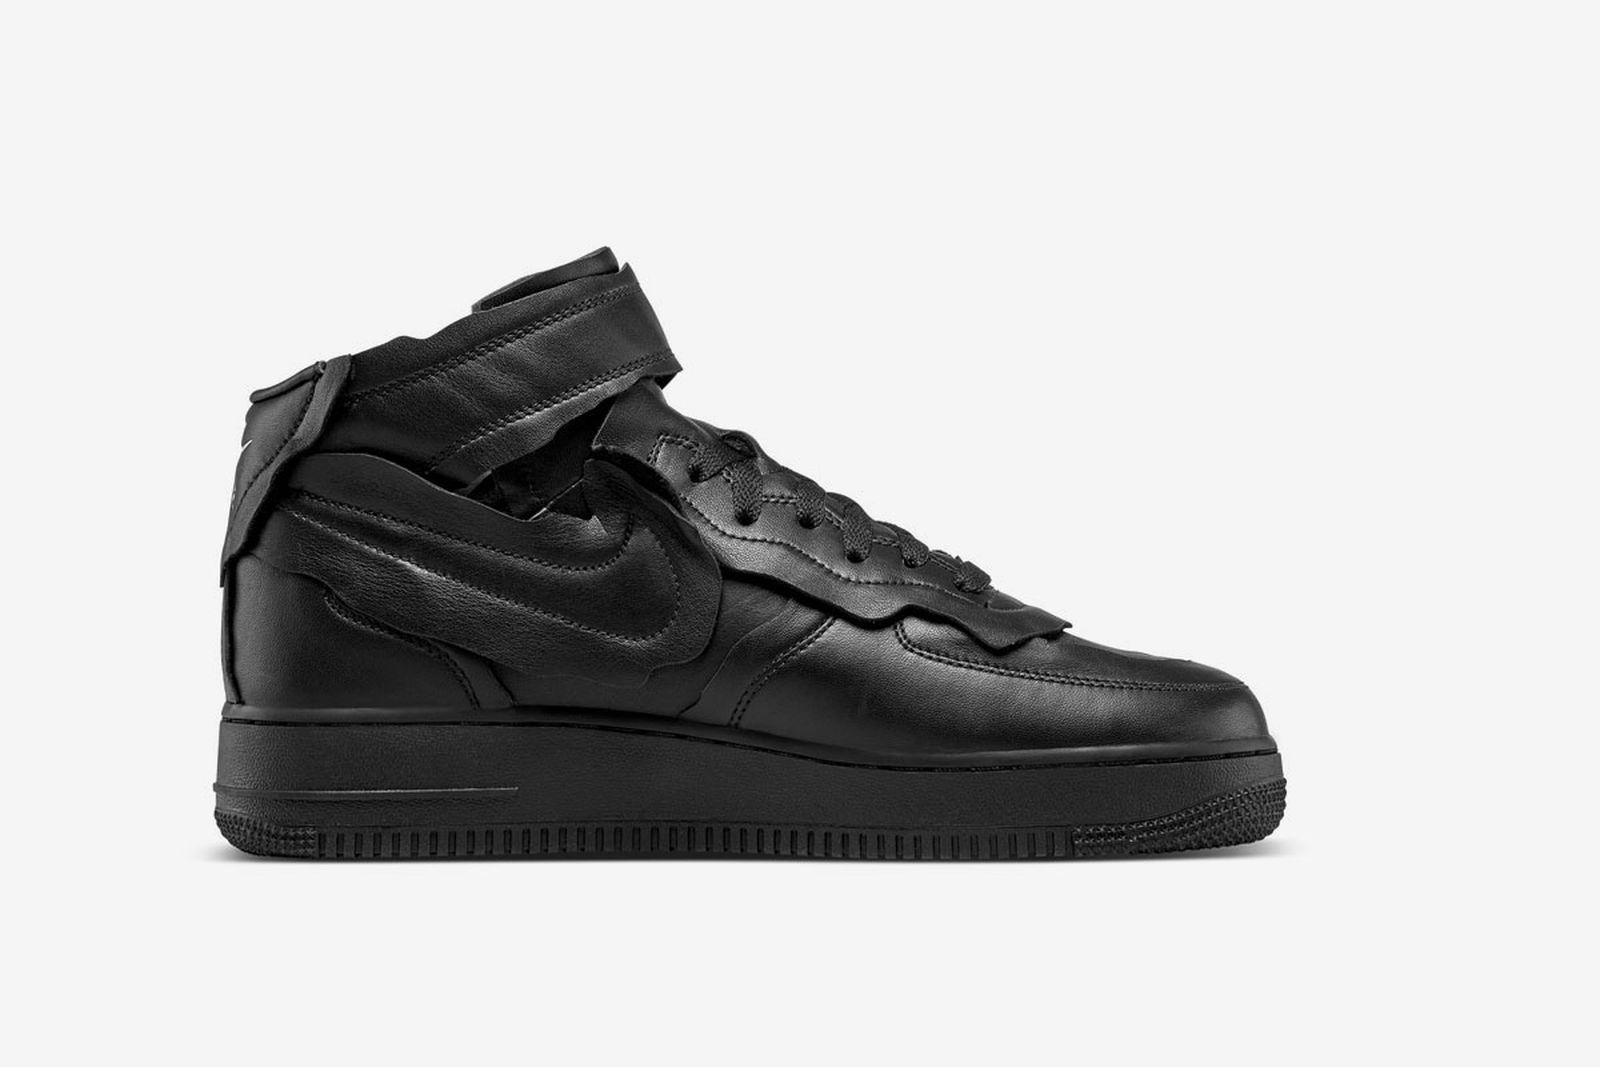 comme-des-garcons-nike-air-force-1-mid-release-date-price-04